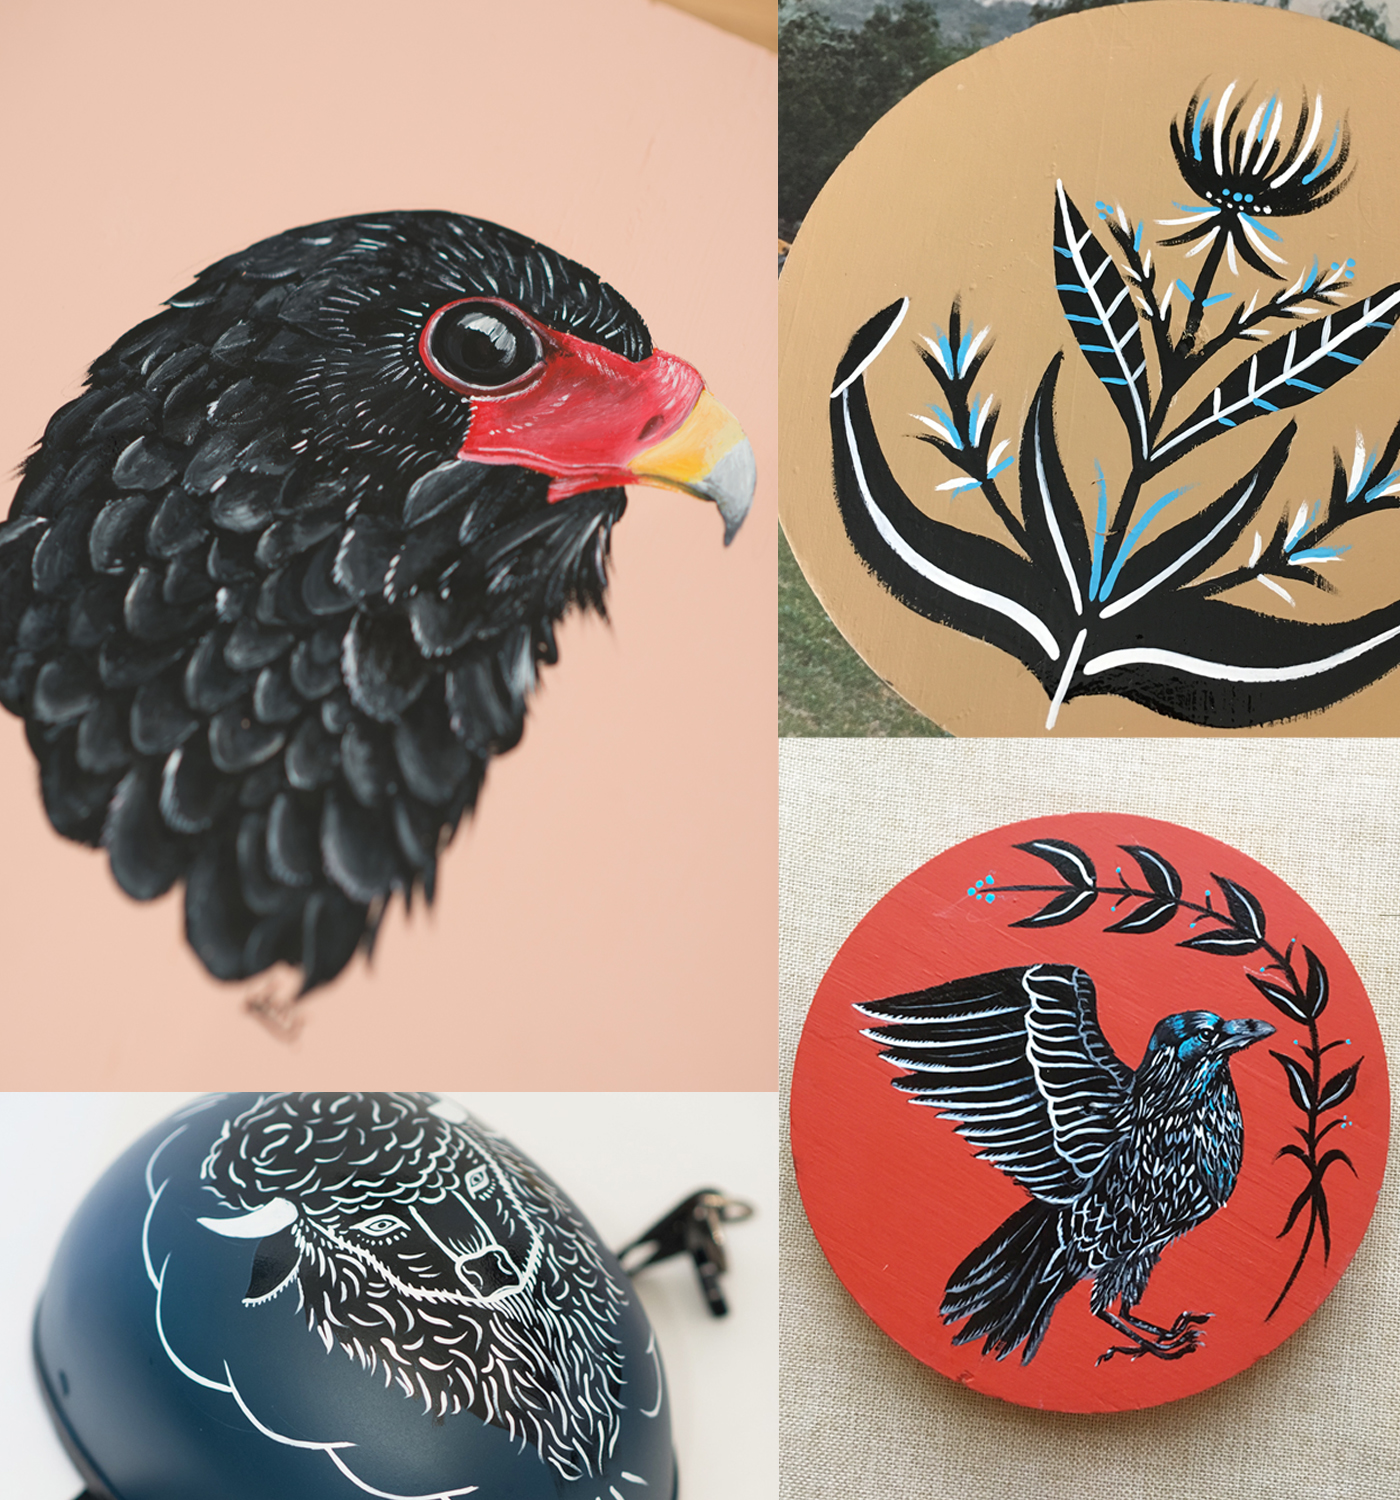 Derwood Paint Co. conveys the beauties of flora and fauna both great and small and range from delicate ink drawings and watercolors on paper to striking 1 Shot enamel paintings on wood.